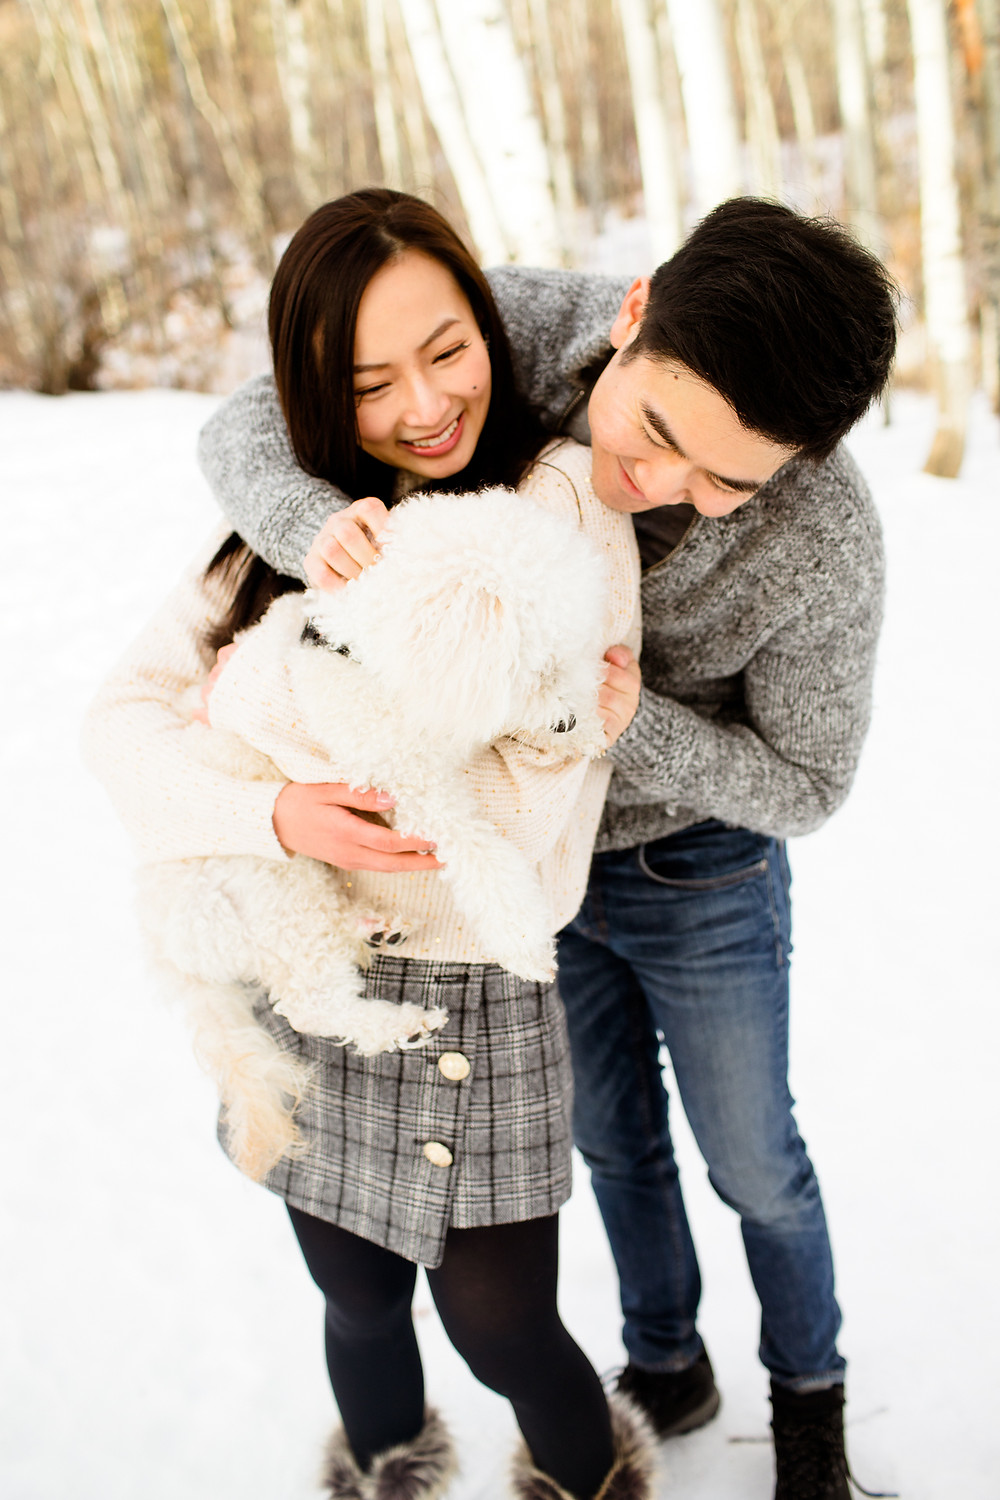 man and woman playing with their dog at a snowy park